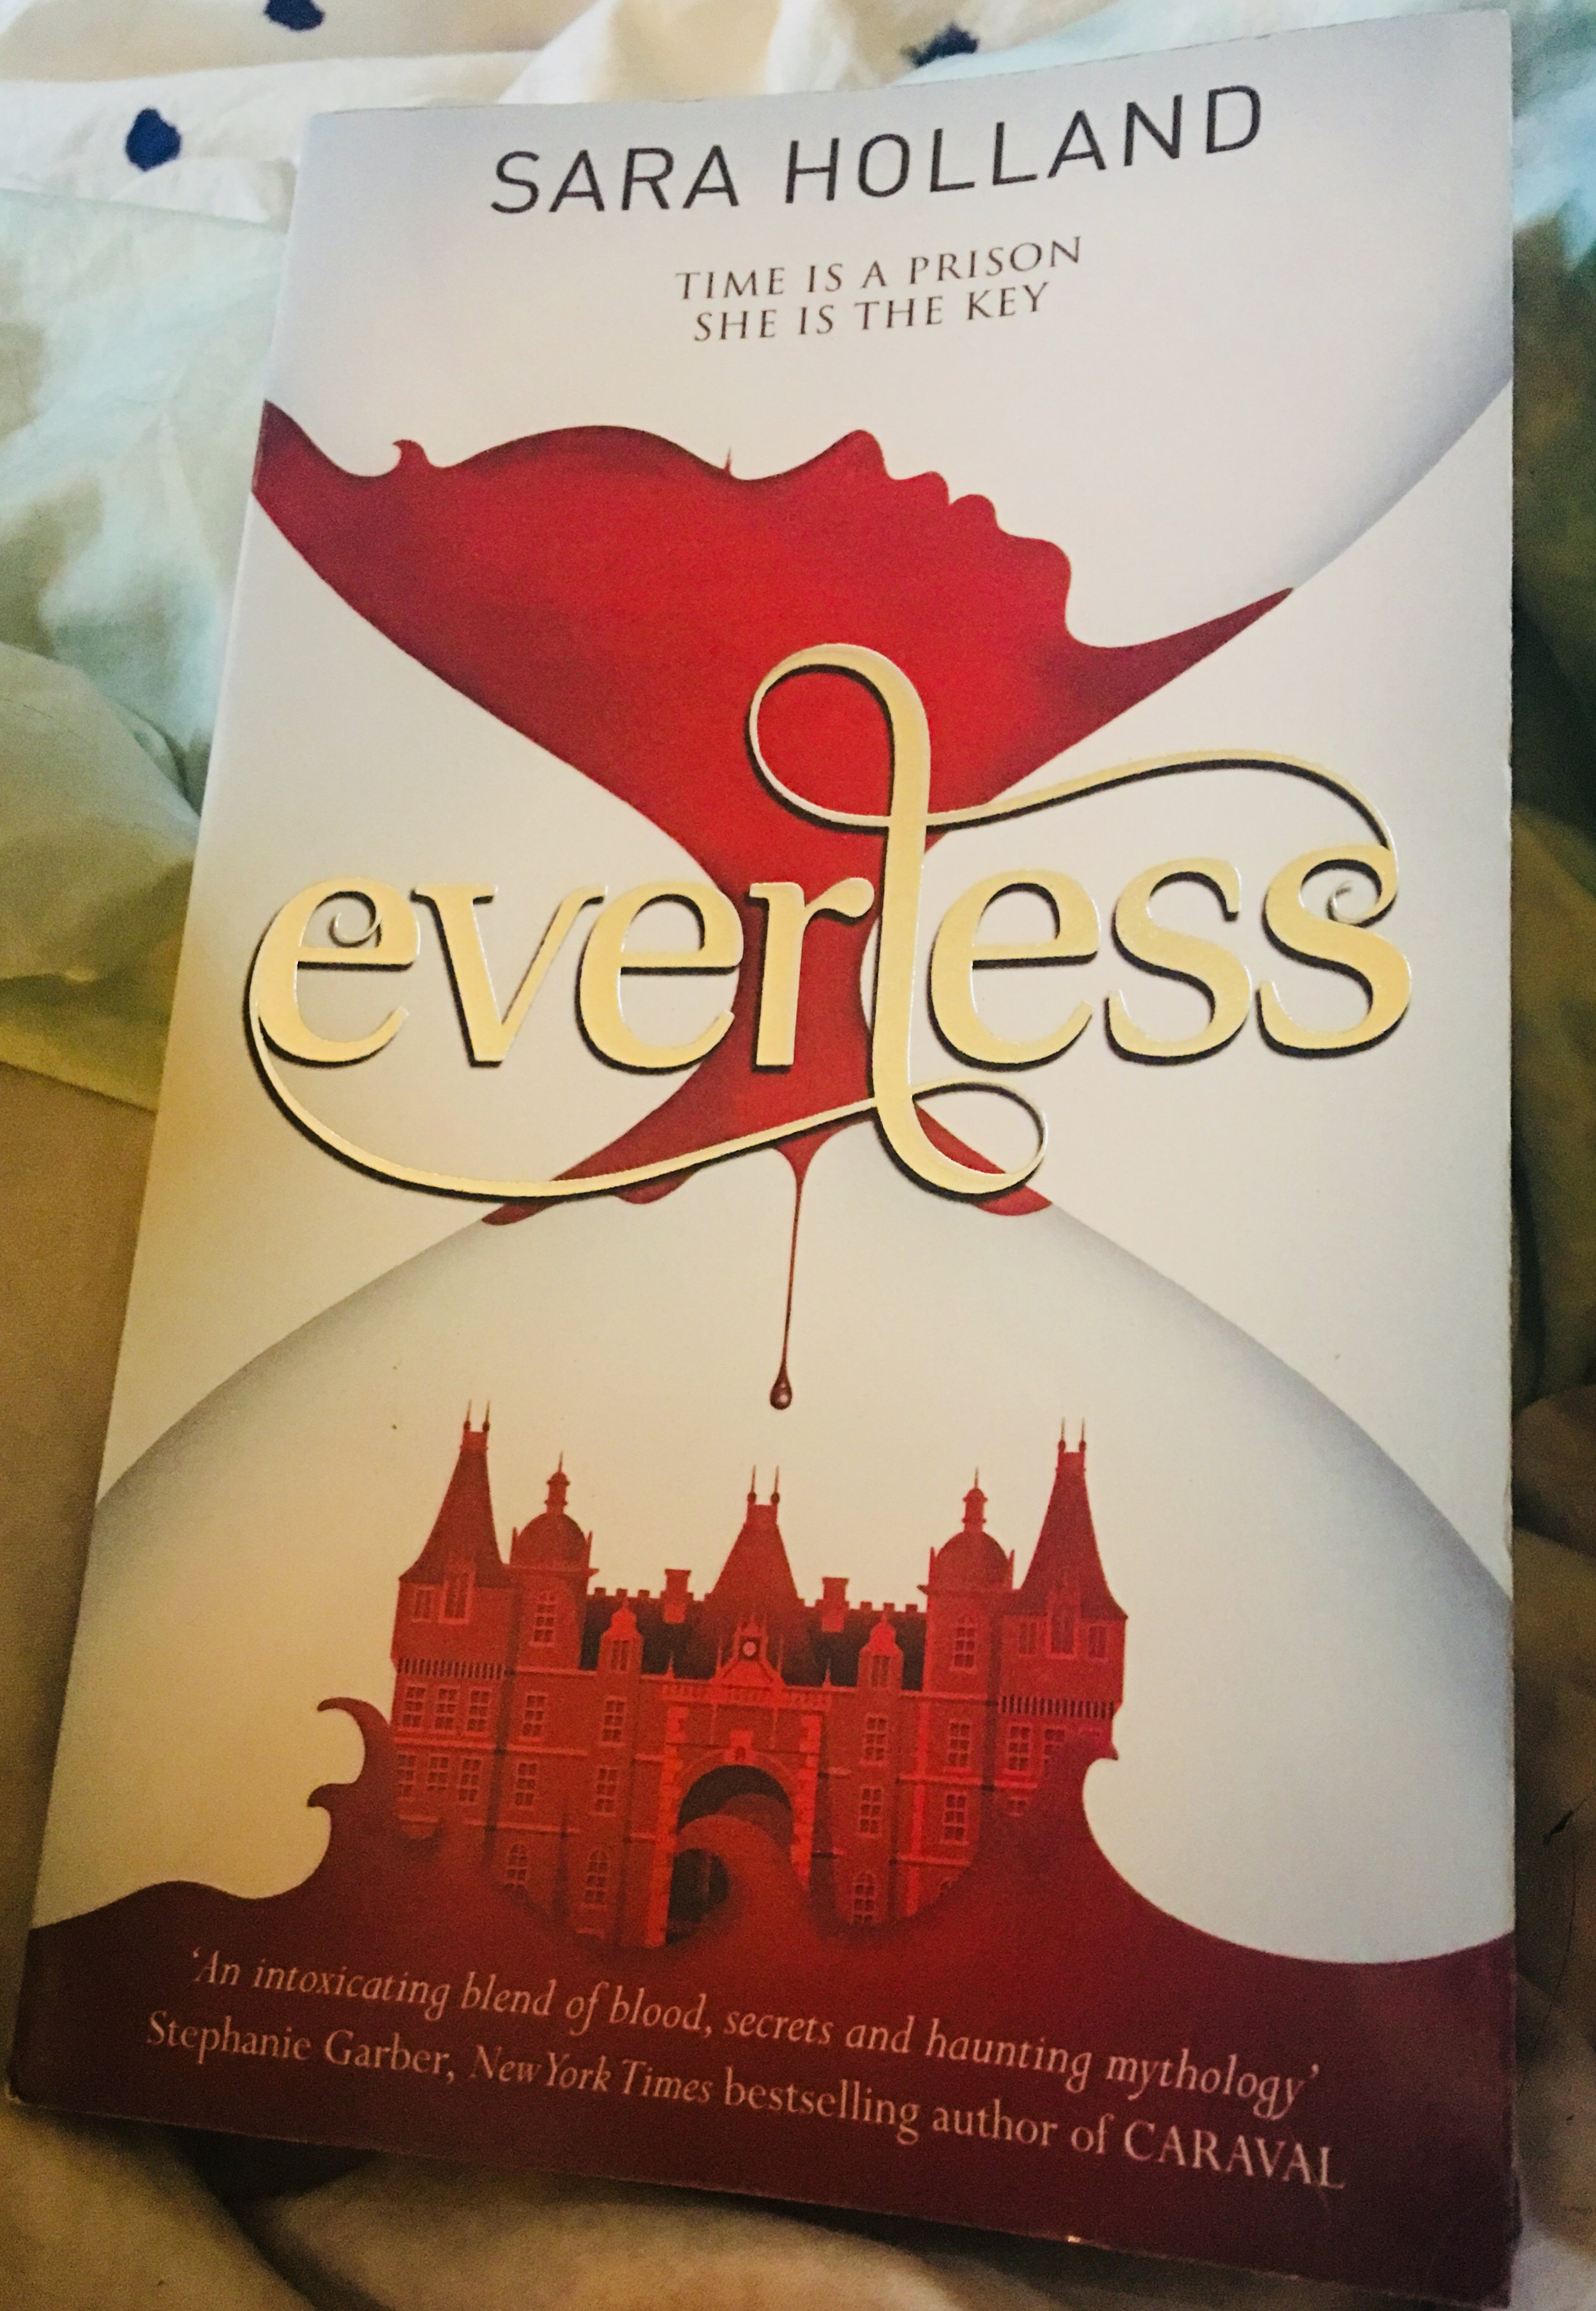 Everless - By Sara Holland   Everless #1My rating: 4 stars   Pages: 362What made me pick it up: BookclubFormat: Paperback   Source: Dymocks2018 challenge/s: Goodreads 2018 Reading Challenge